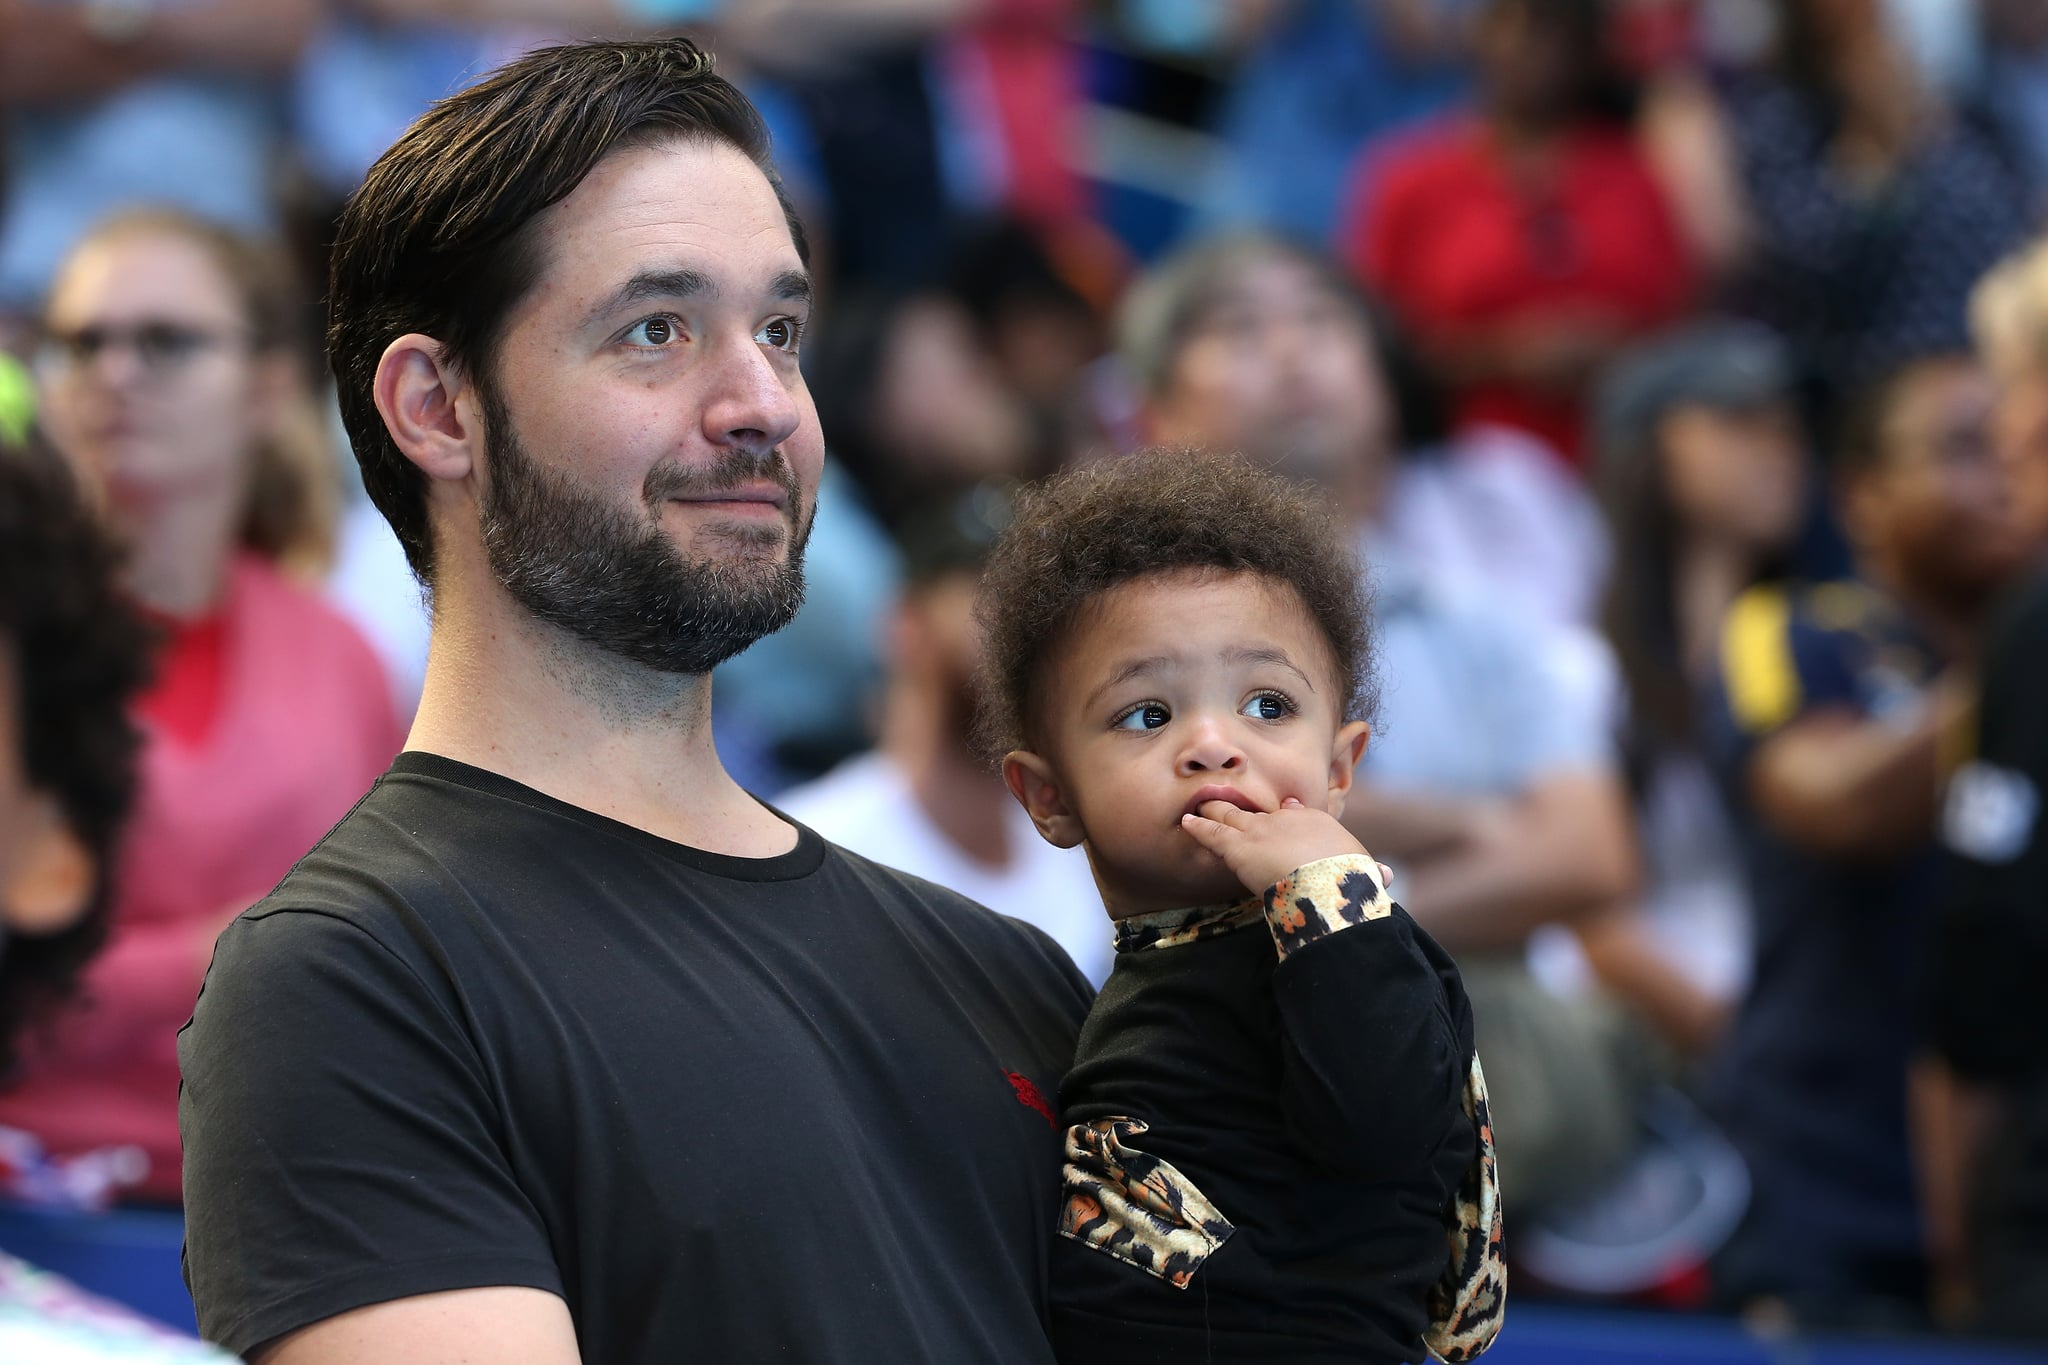 PERTH, AUSTRALIA - JANUARY 03: Serena Williams's husband Alexis Ohanian, holds their daughter Alexis Olympia Ohanian Jr. following the women's singles match between Serena Williams of the United States and Katie Boulter of Great Britain during day six of the 2019 Hopman Cup at RAC Arena on January 03, 2019 in Perth, Australia. (Photo by Paul Kane/Getty Images)